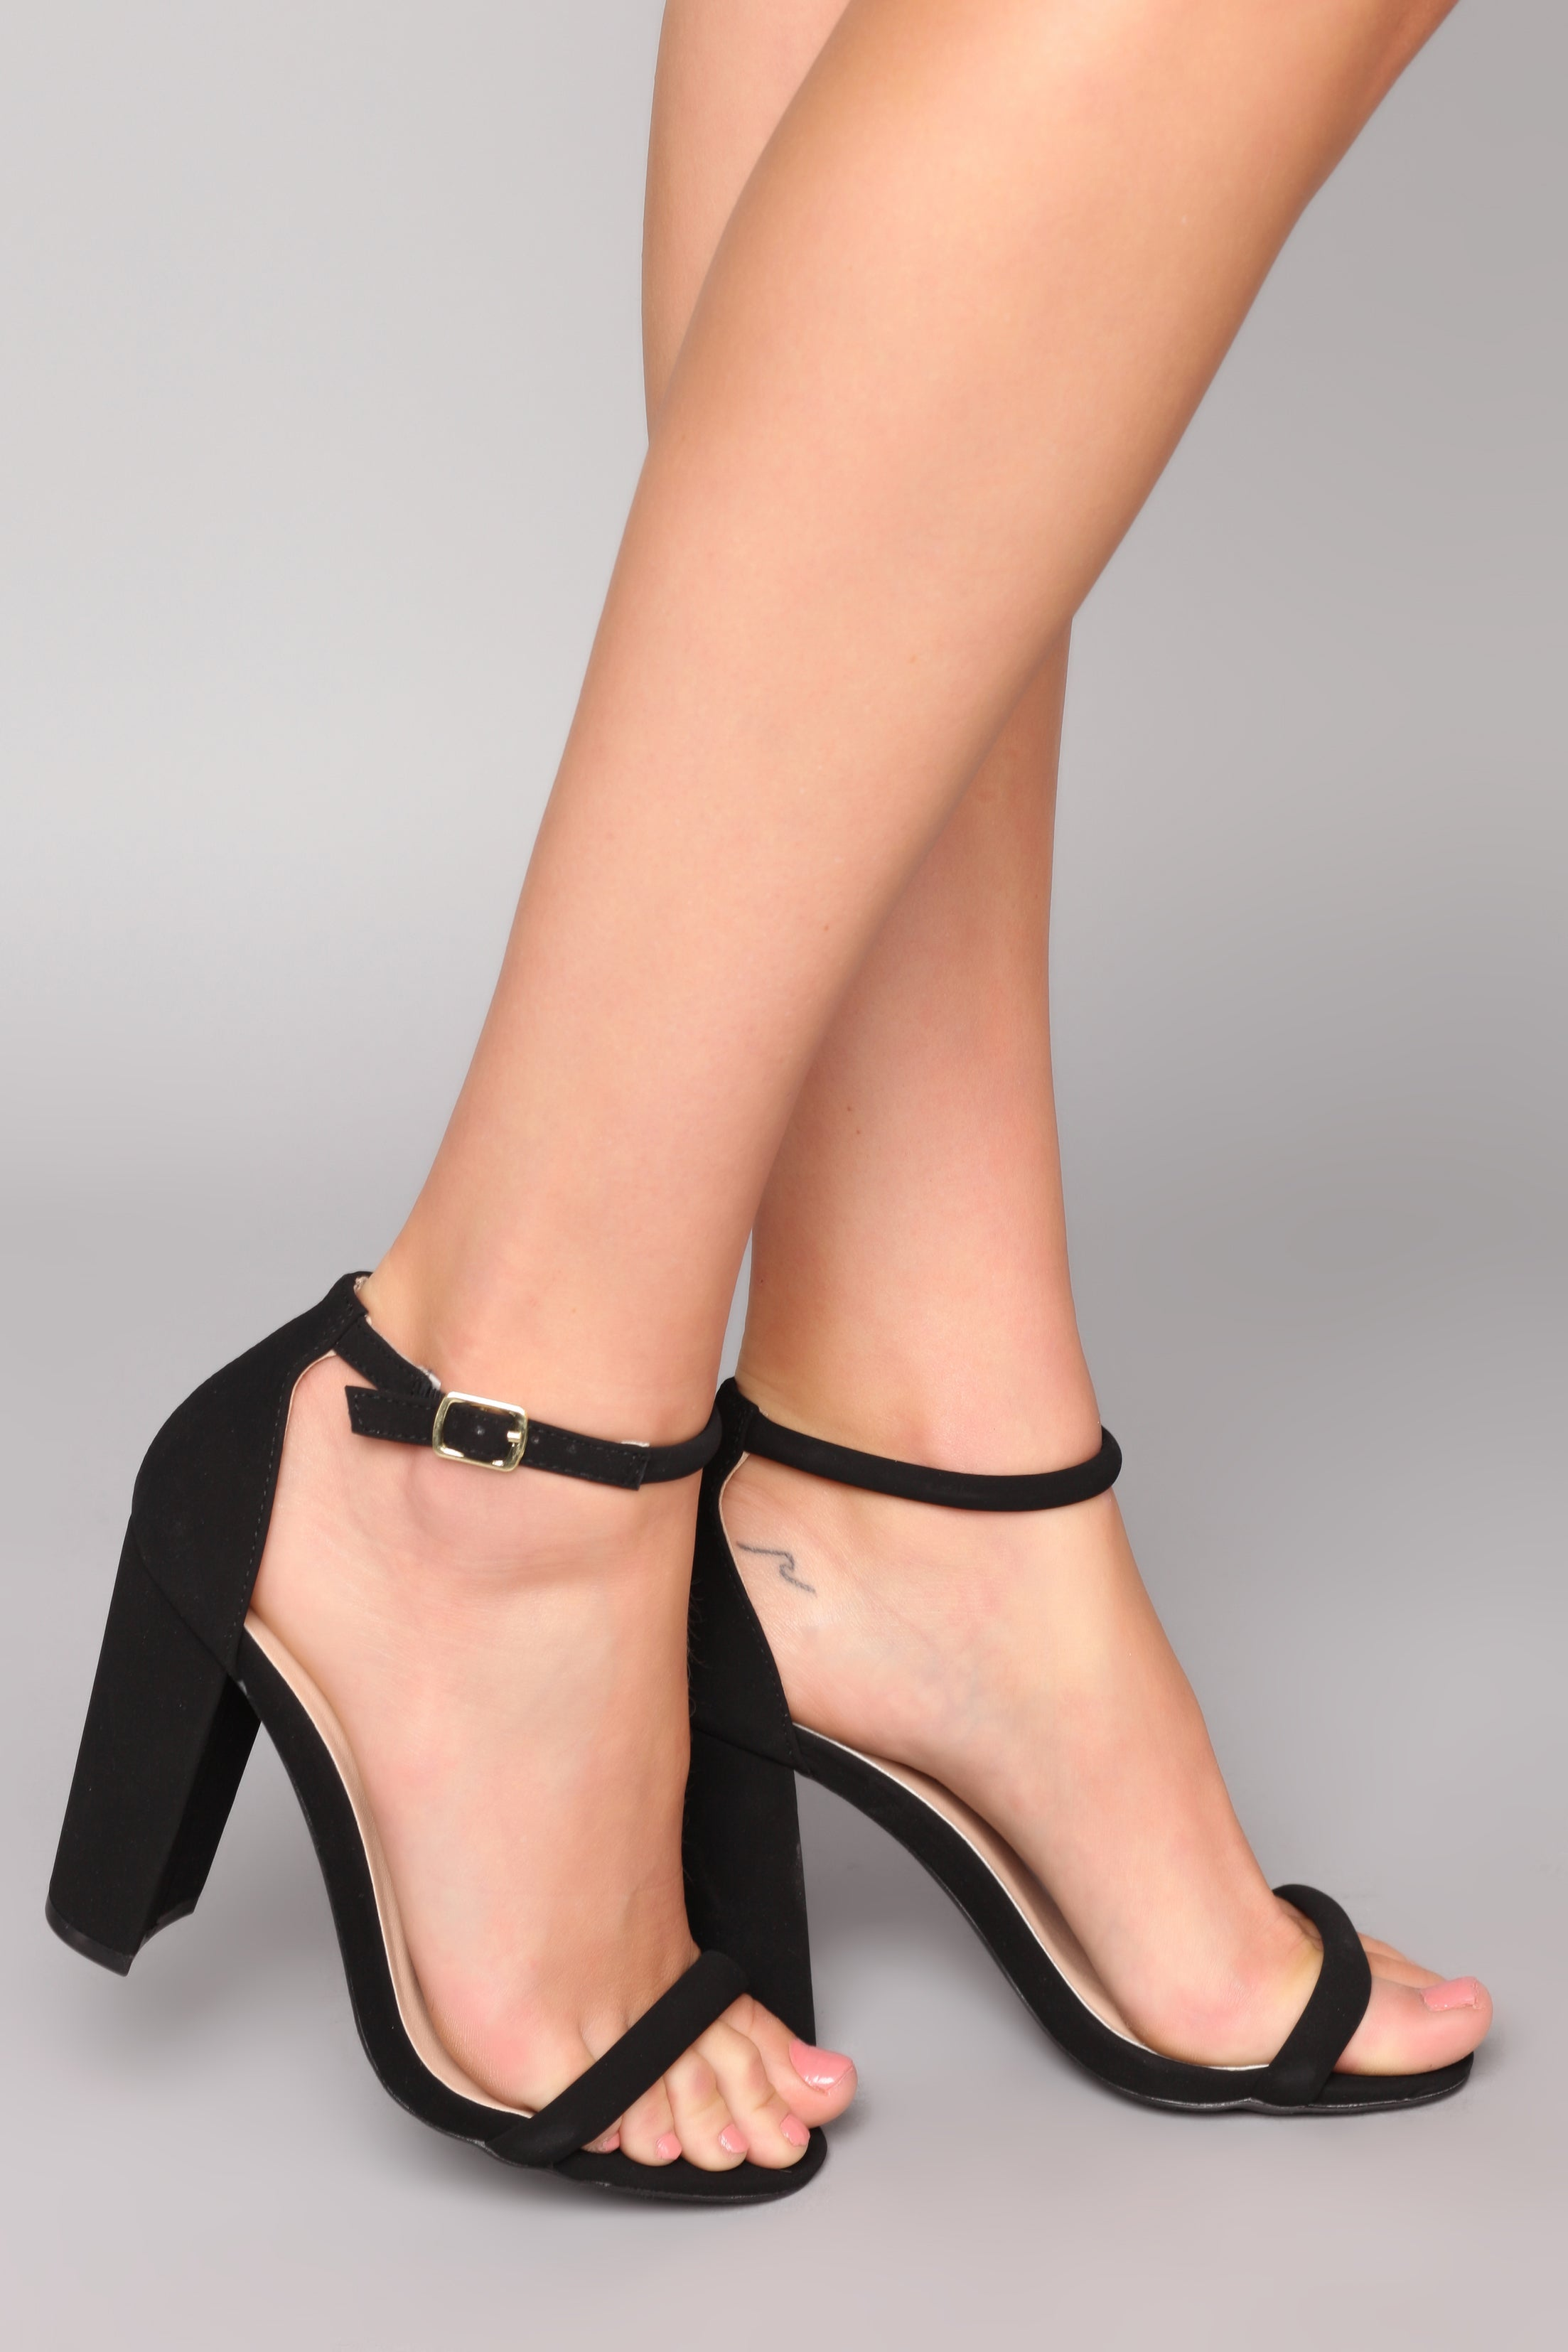 Flats shoes free tubes look excite and delight